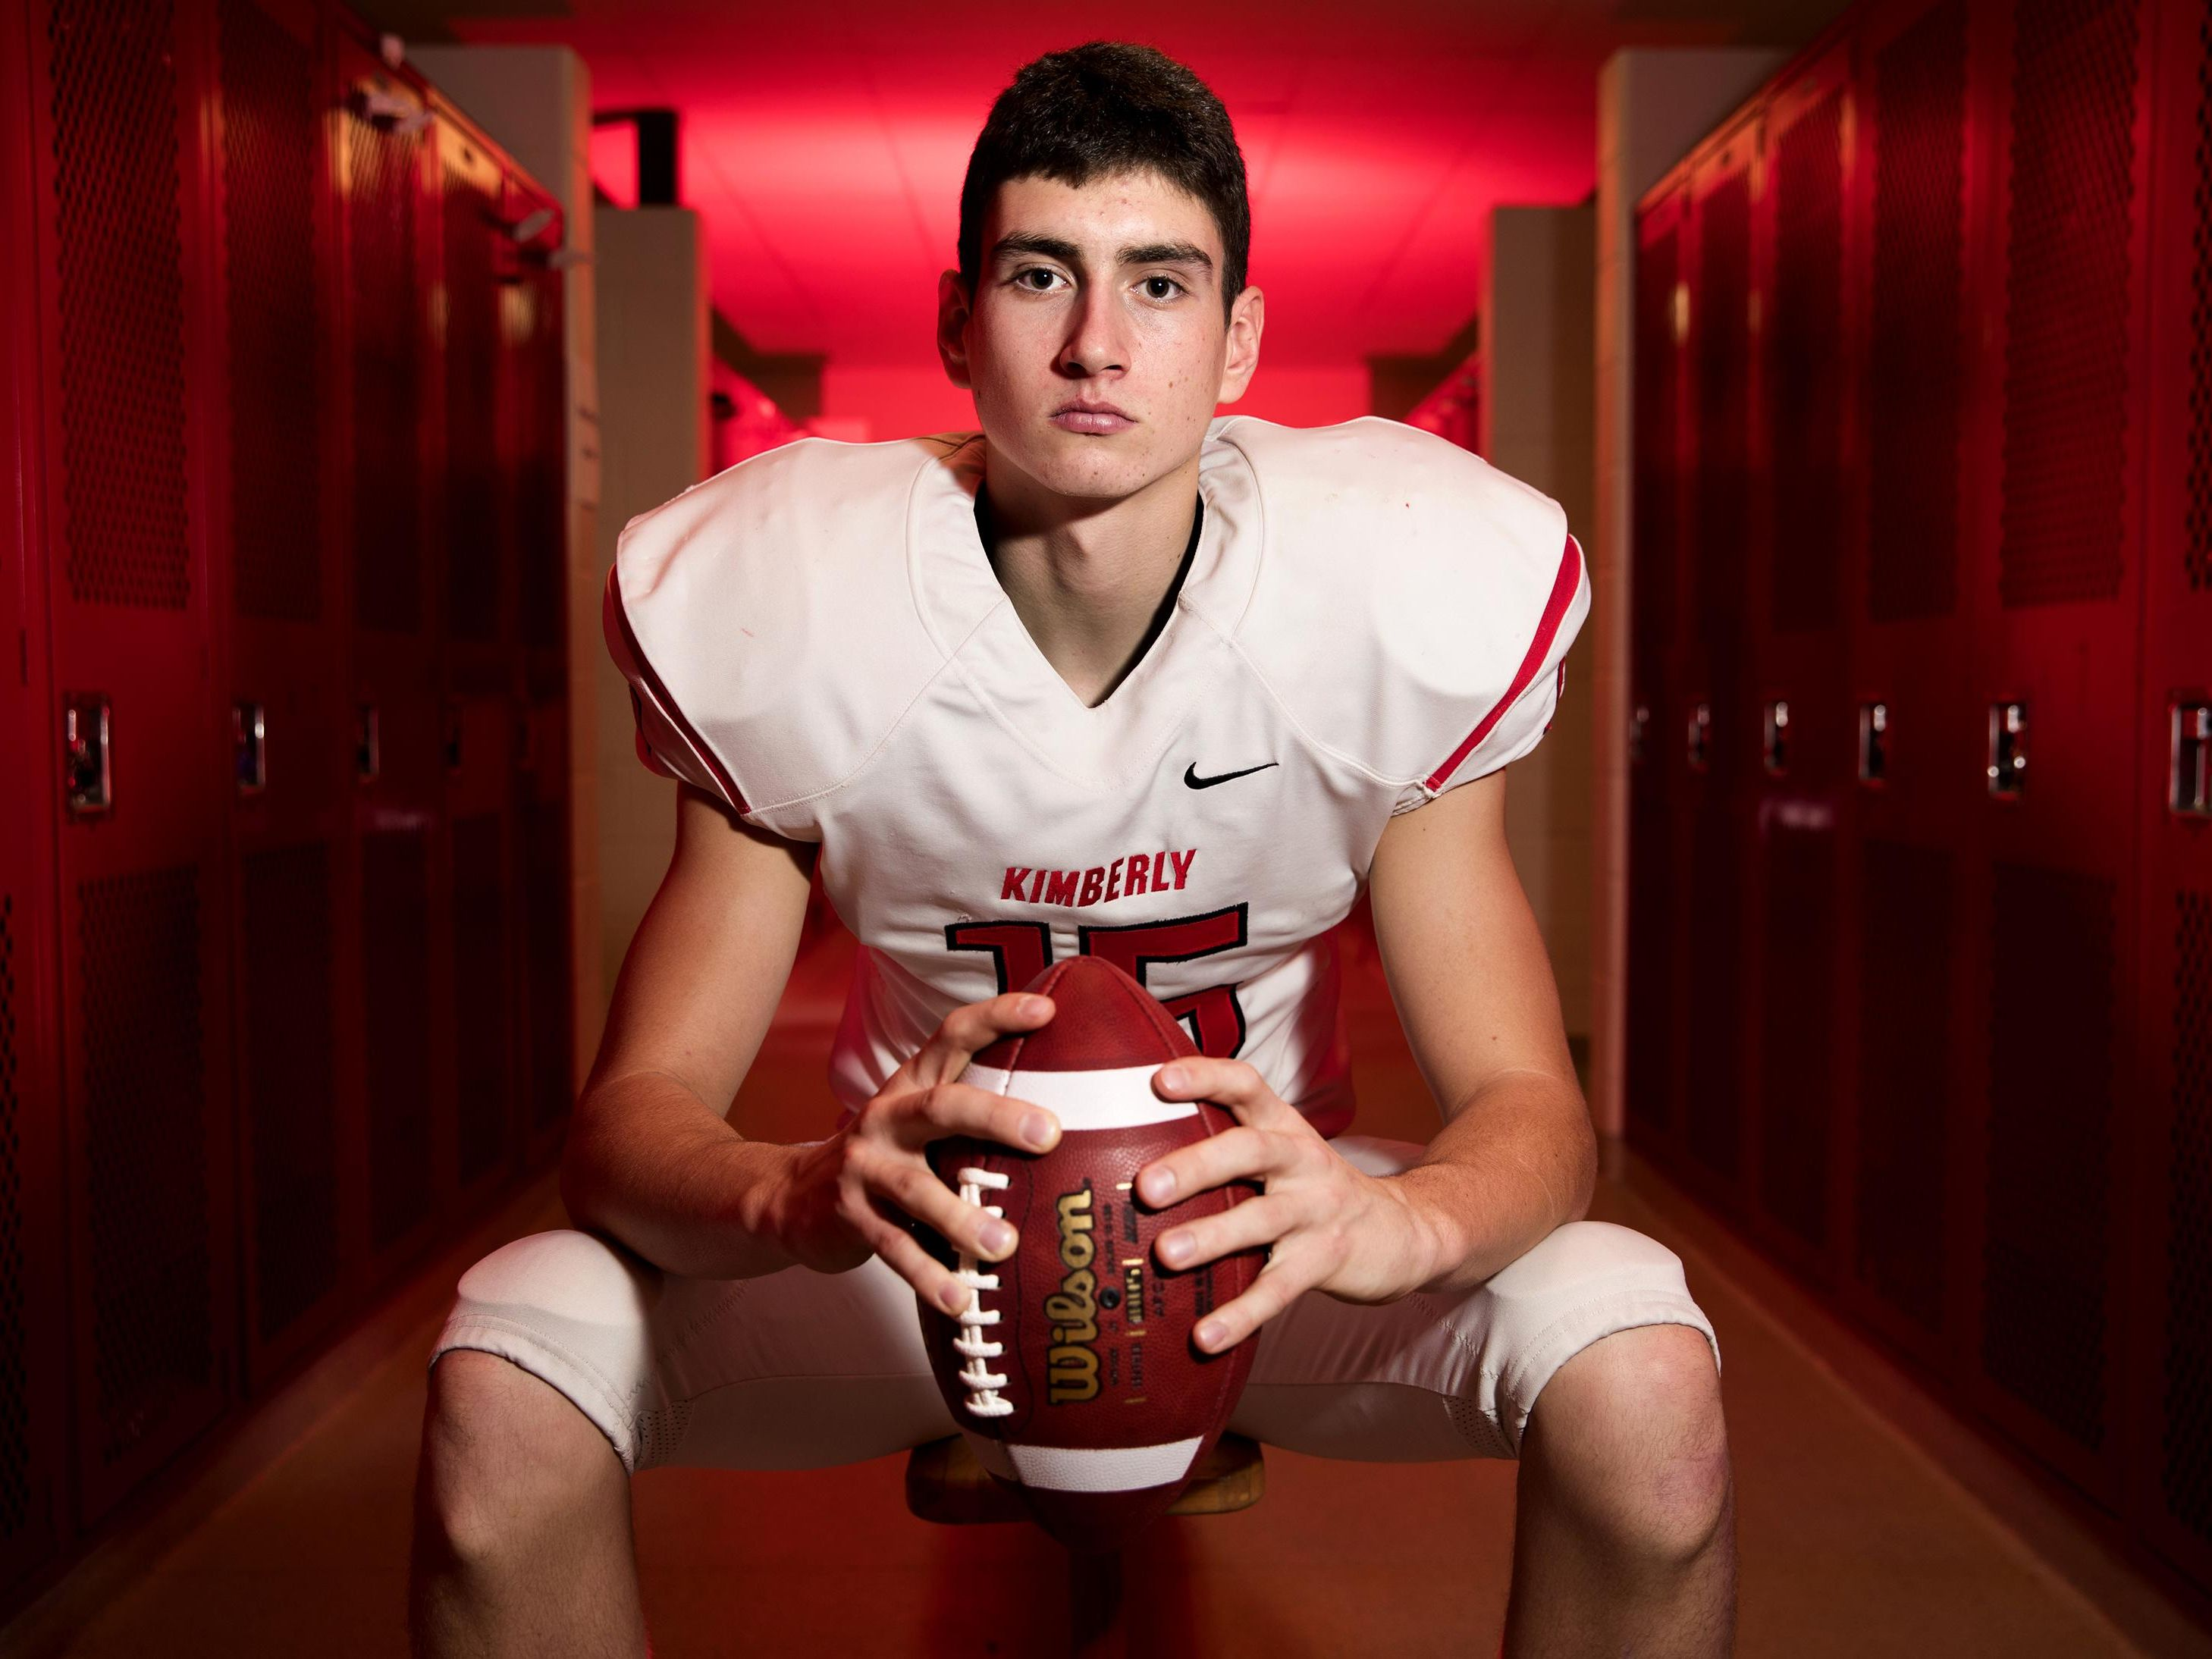 Danny Vanden Boom, a senior at Kimberly High School, is the Post-Crescent's prep football athlete of the year.